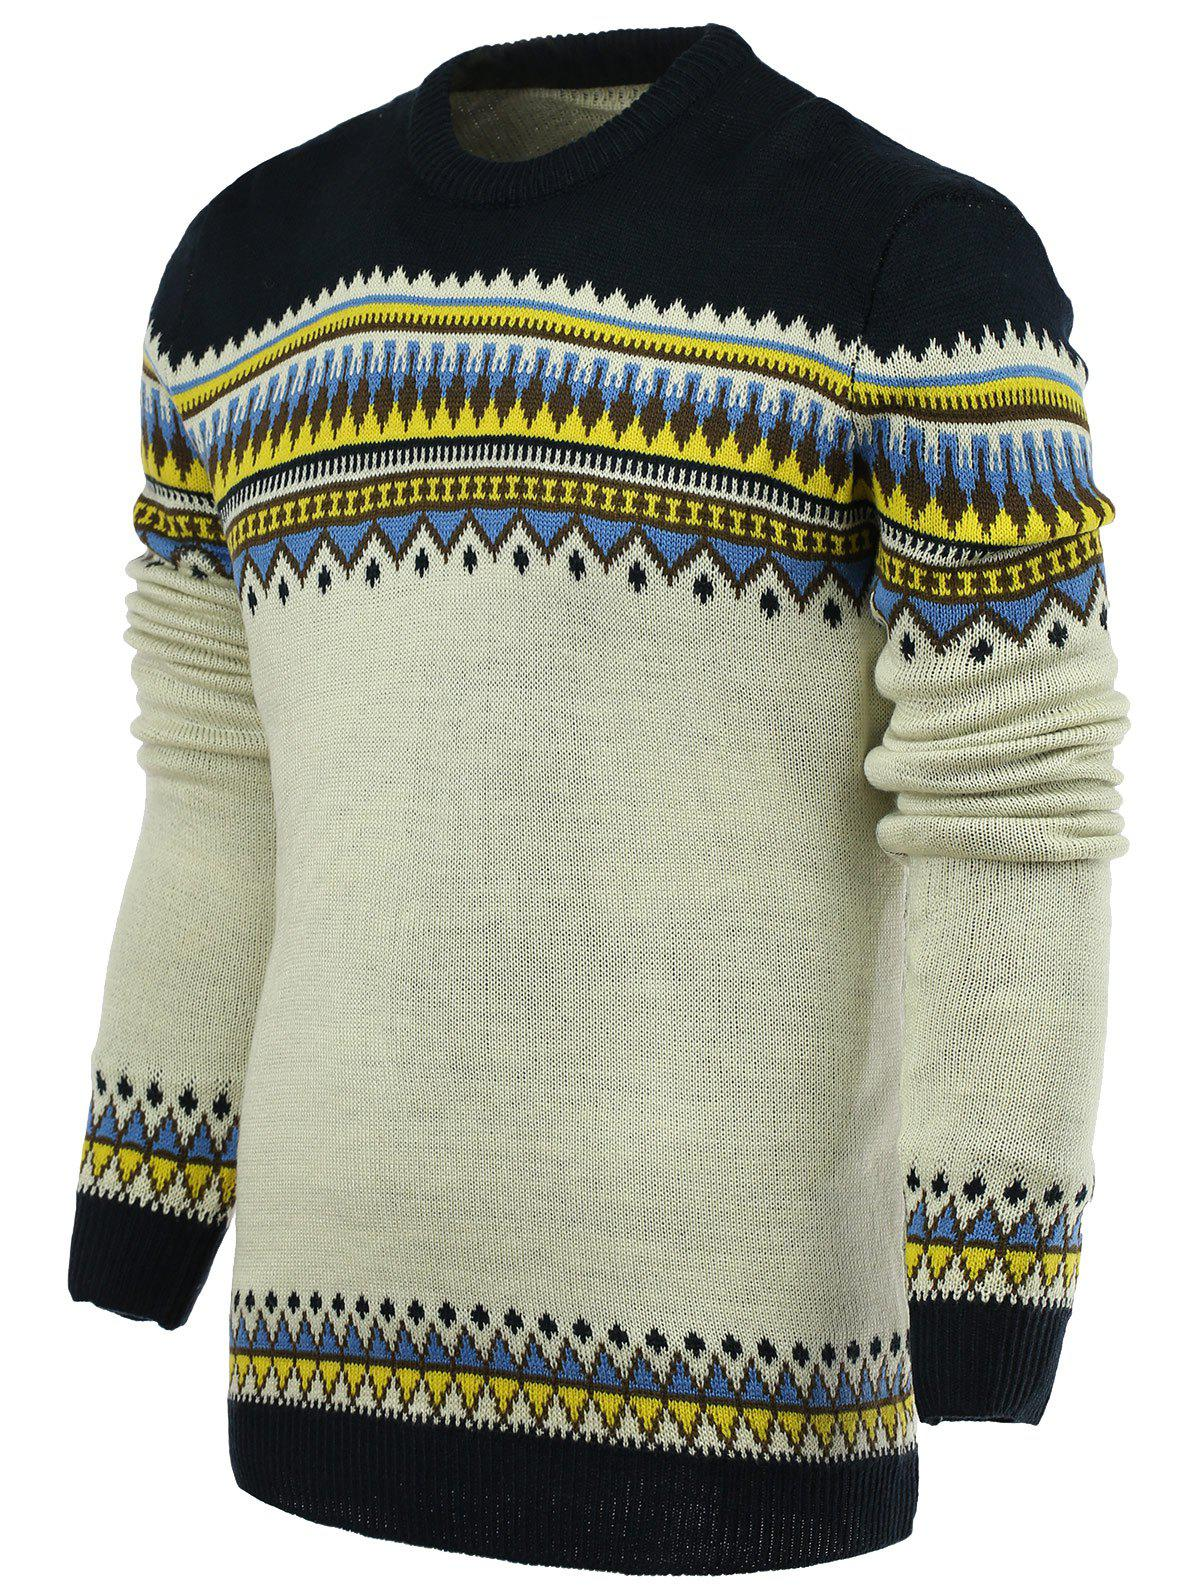 Ethnic Style Geometric Pattern Stylish Round Neck Long Sleeve Men's Sweater - PURPLISH BLUE XL